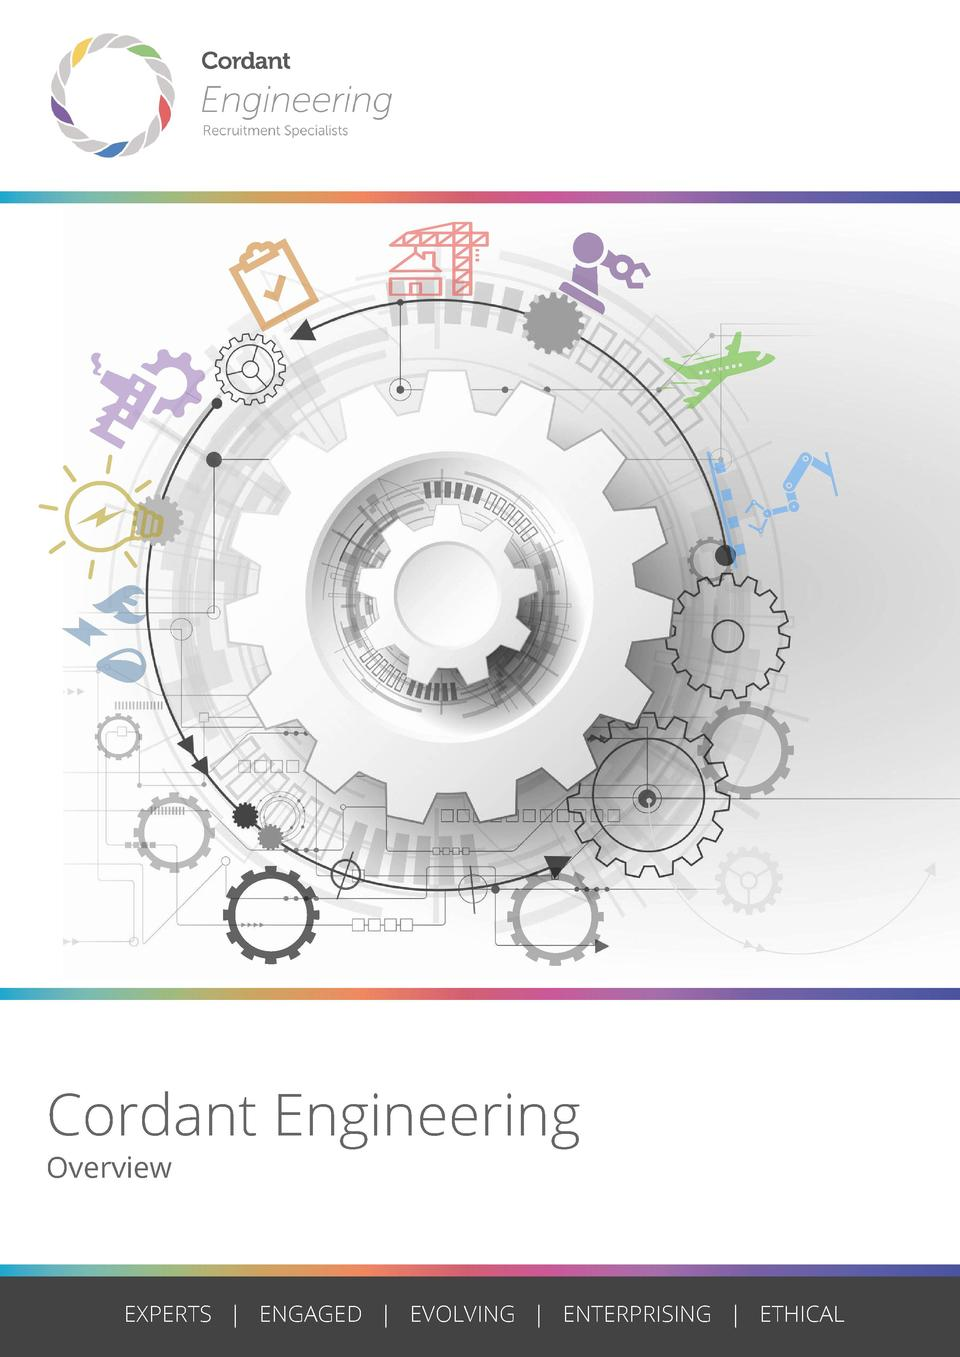 Cordant Engineering Overview  EXPERTS   ENGAGED   EVOLVING   ENTERPRISING   ETHICAL